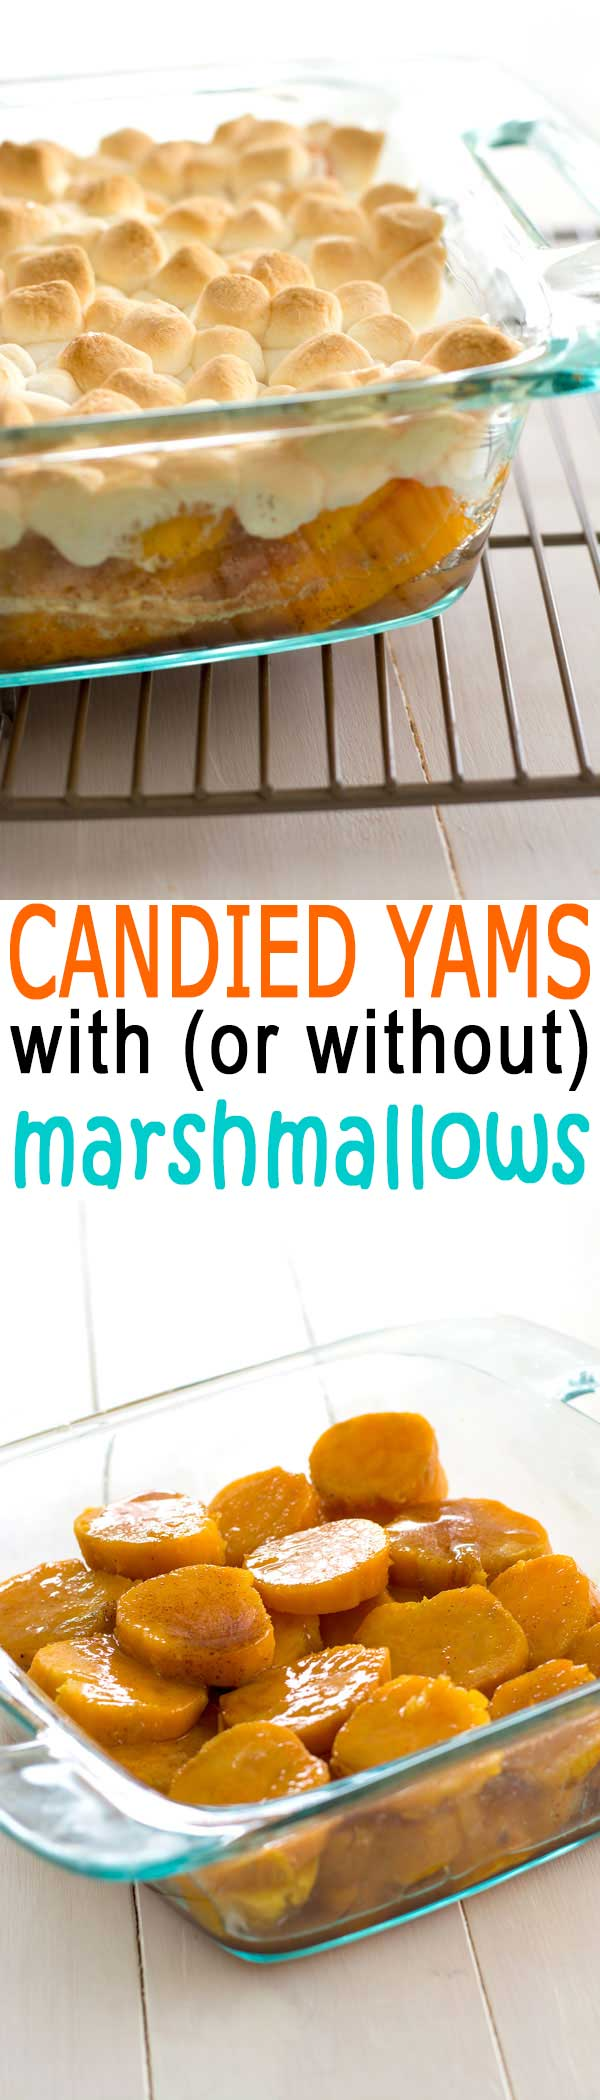 Classic Candied Yams with marshmallows (or without), baked until golden with cinnamon and vanilla!